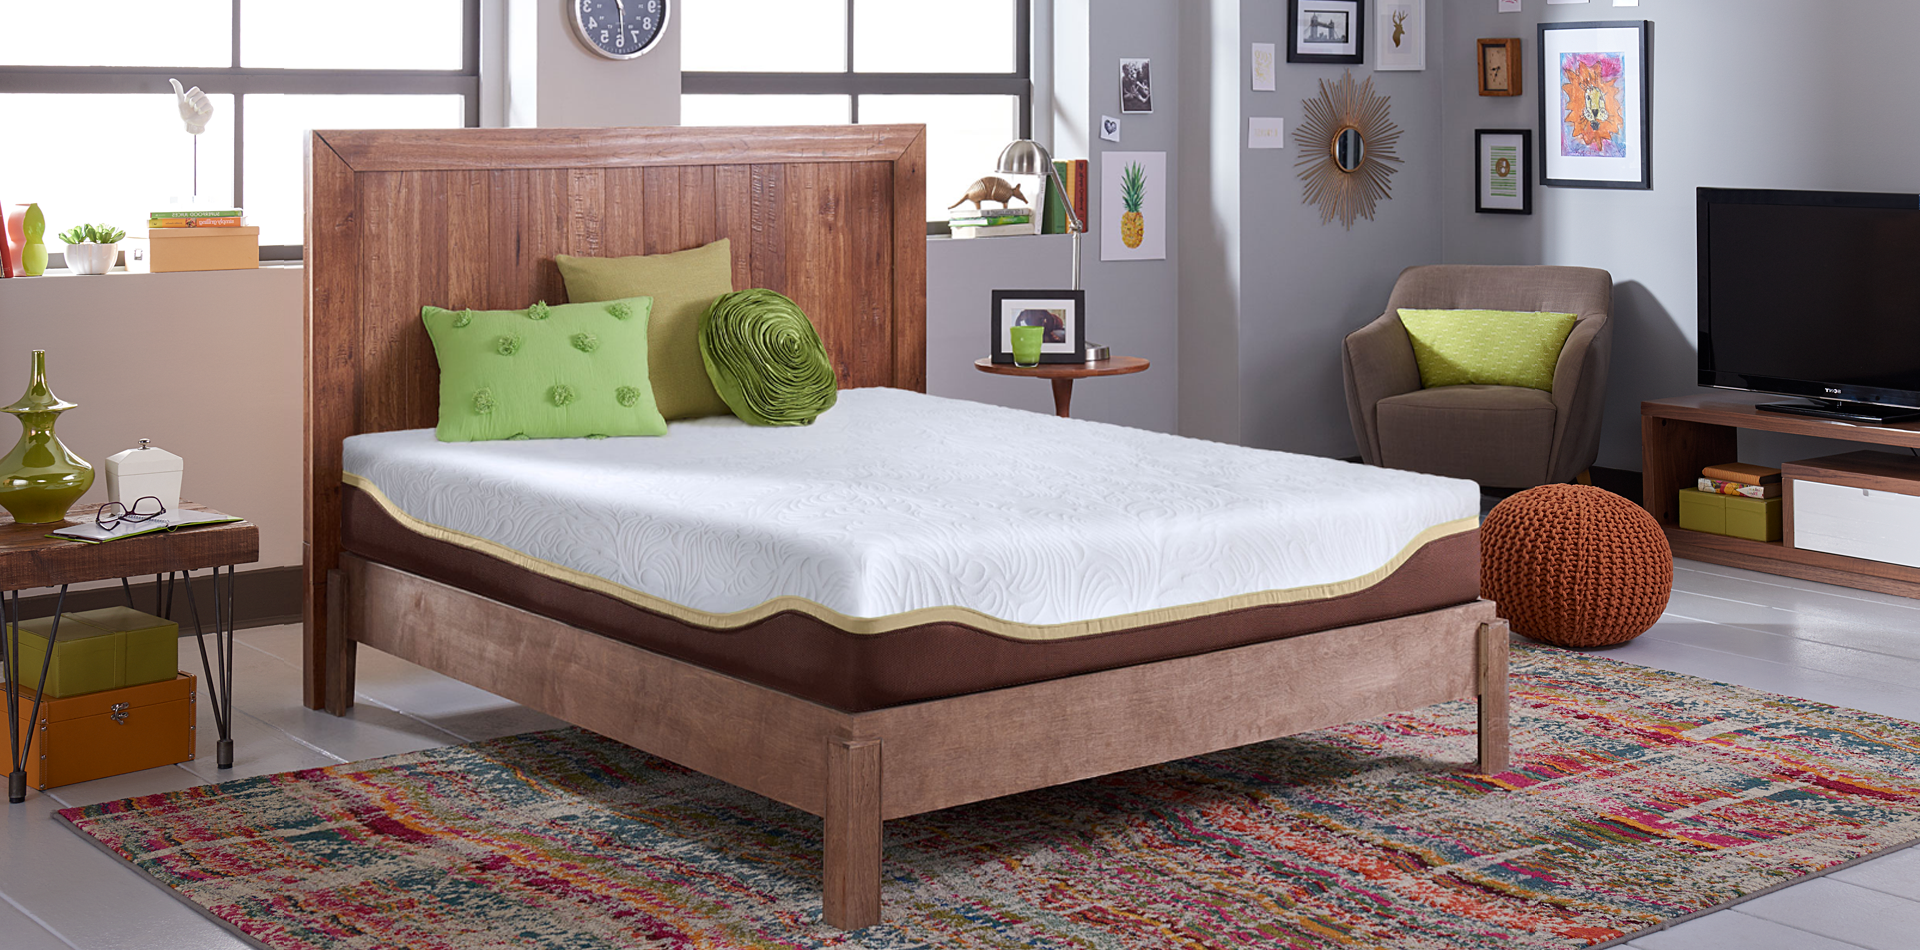 Live and Sleep Elite Cal King Mattress (includes 1 free pillow)